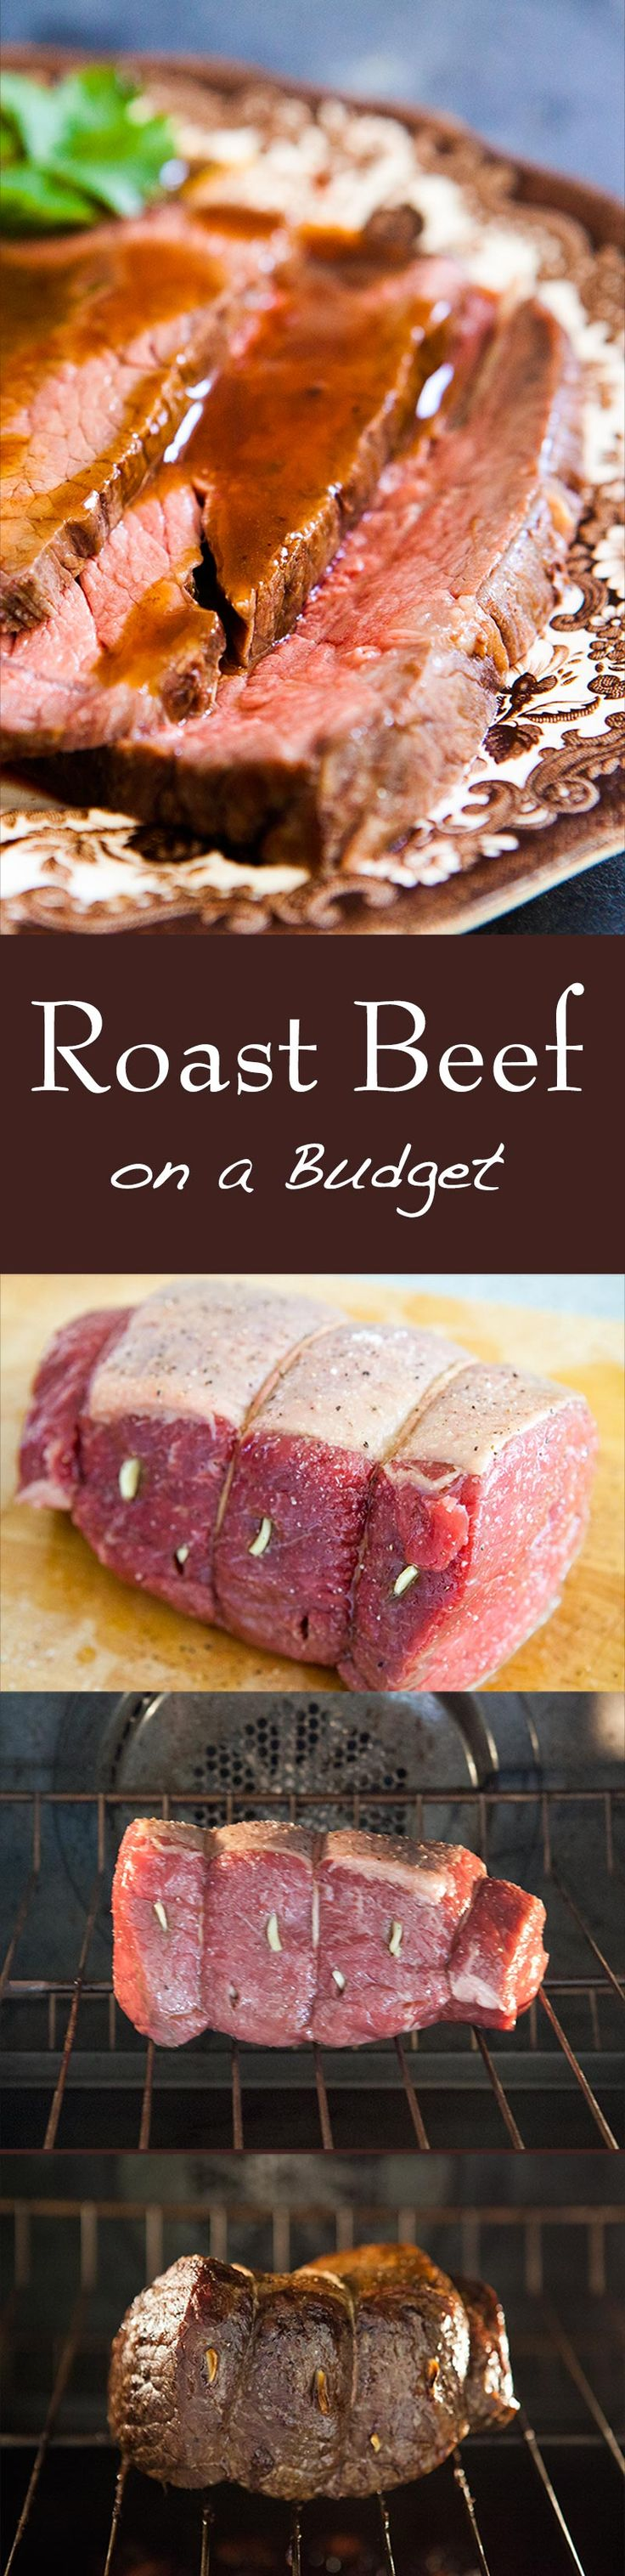 Classic roast beef recipe using rump roast, round roast, or sirloin tip. Slow roasting method at low heat is good for tougher, less expensive cuts of beef! Lower heat prevents gristle from getting too tough. EASY to cook and easy on the budget! On SimplyRecipes.com